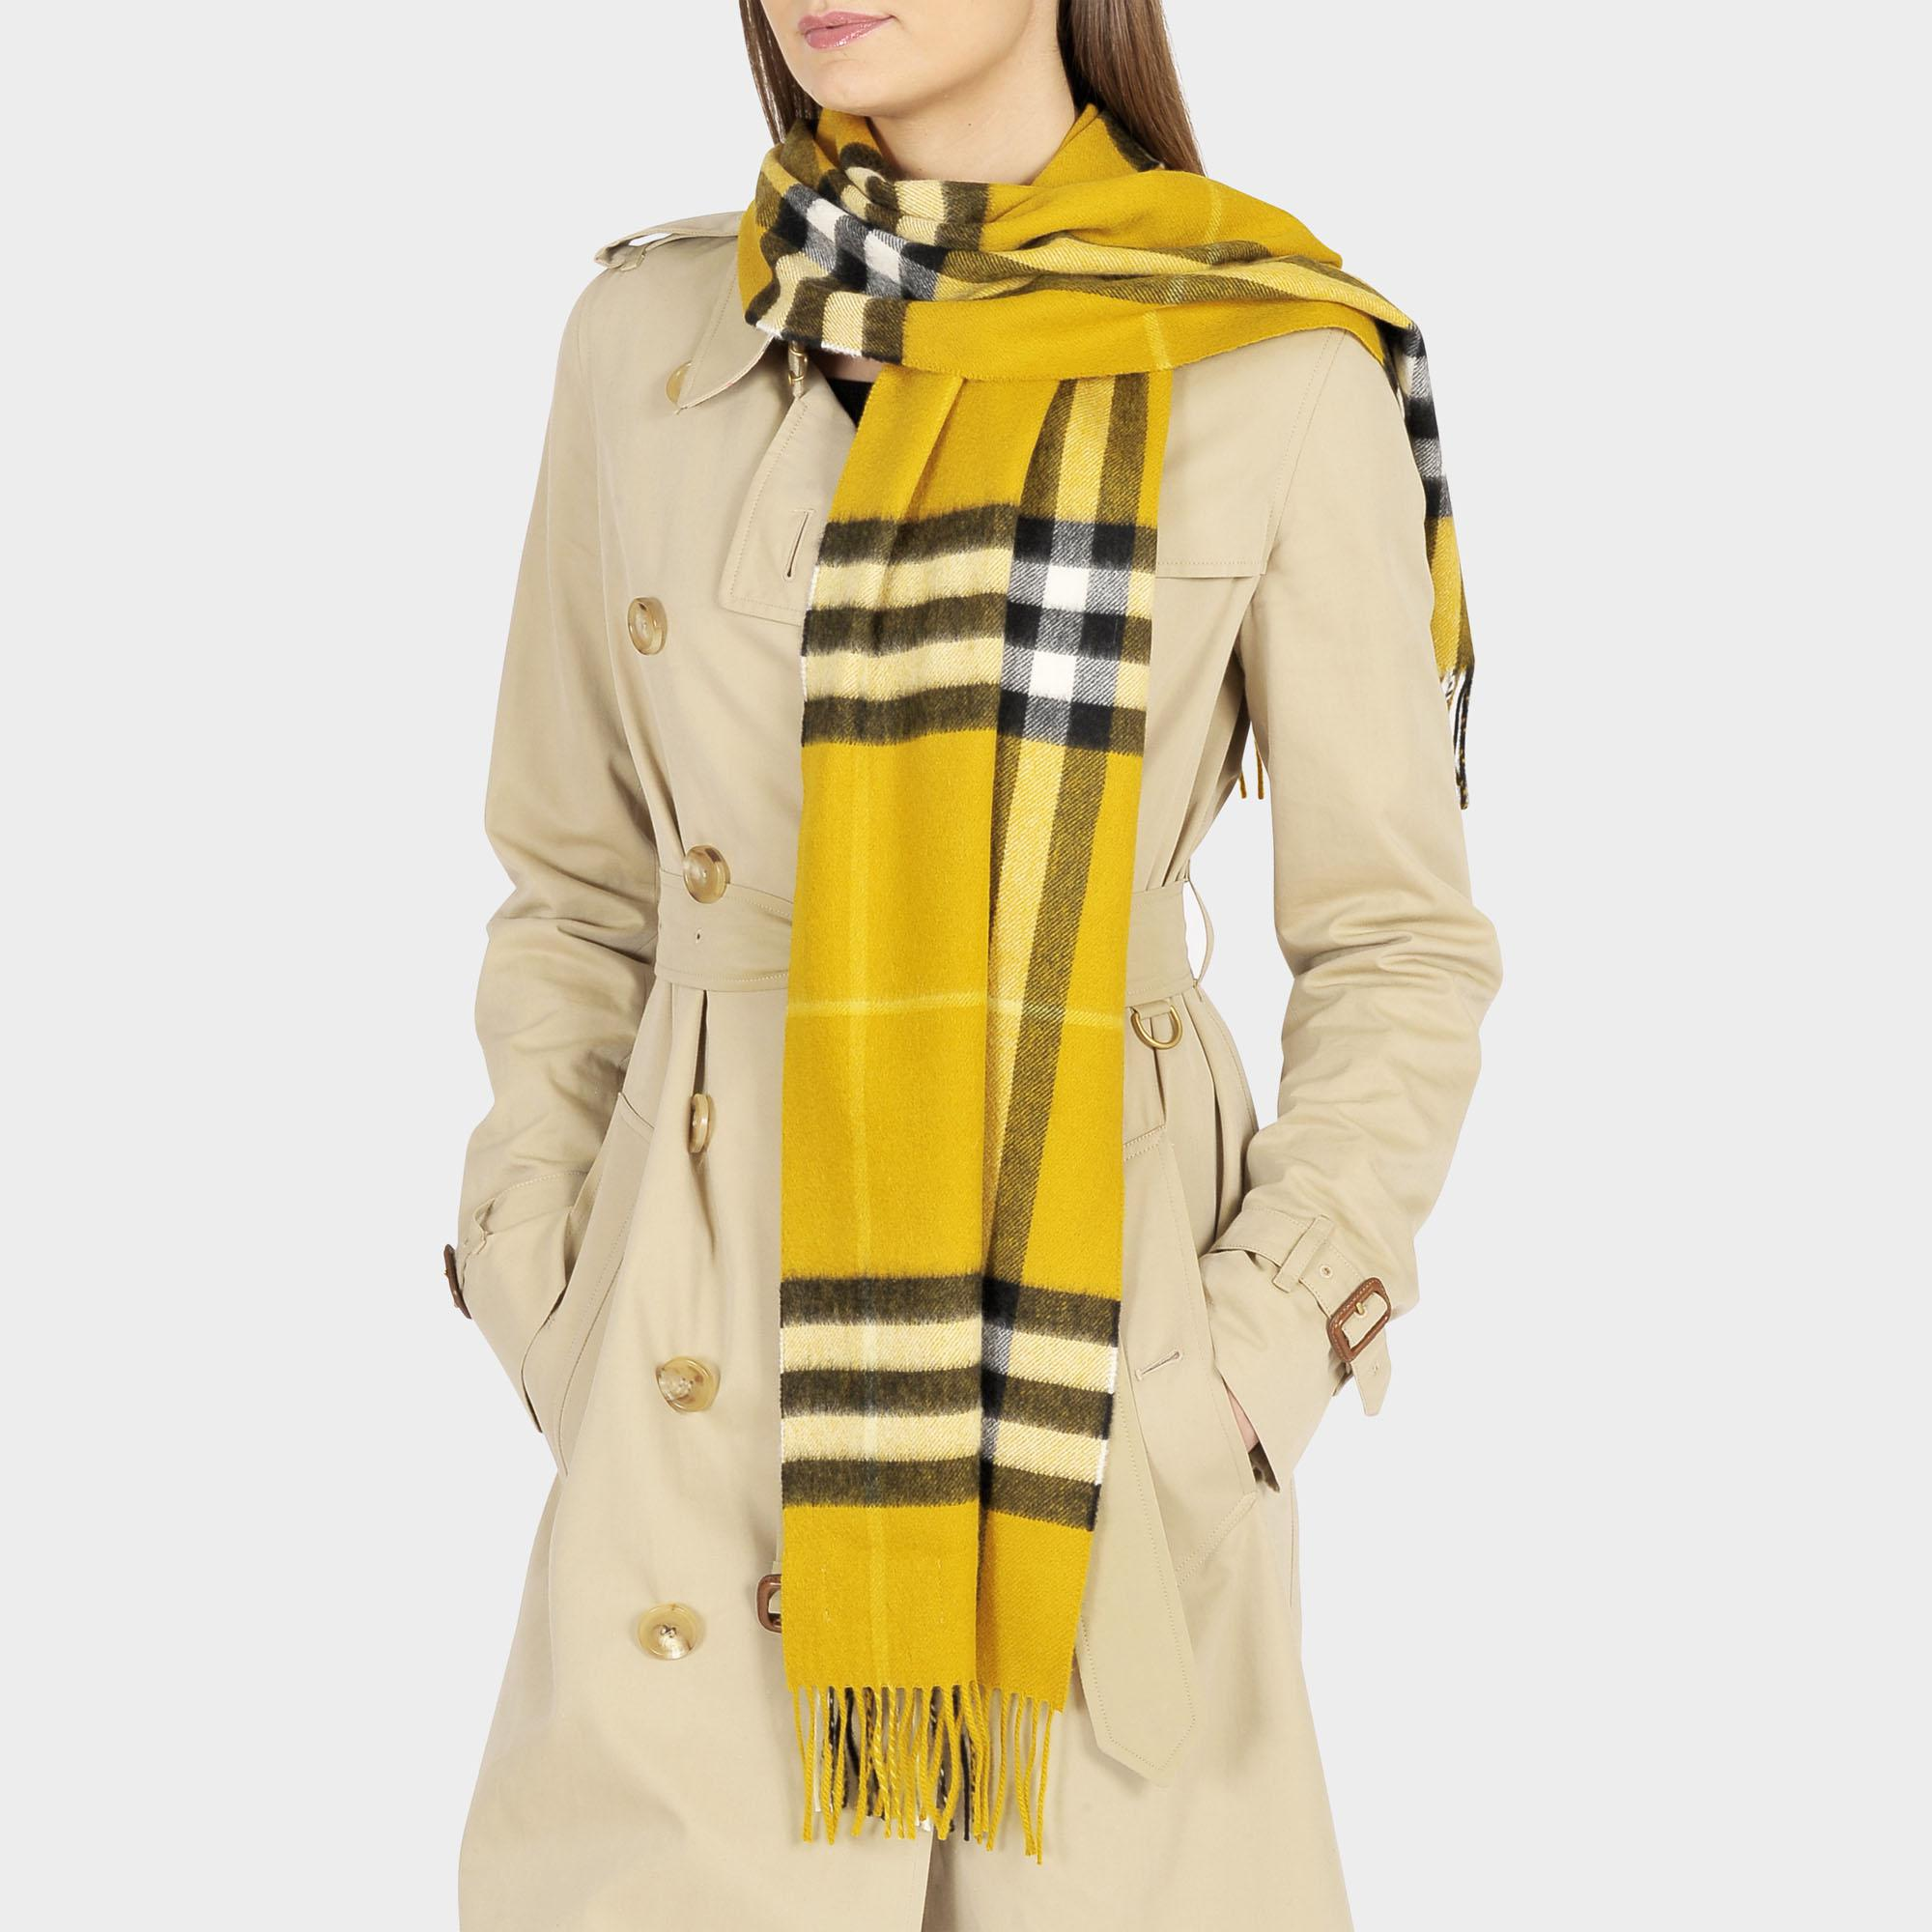 Burberry Giant Icon Check Cashmere Scarf in Yellow - Save 30.0% - Lyst bf56baa2e8876